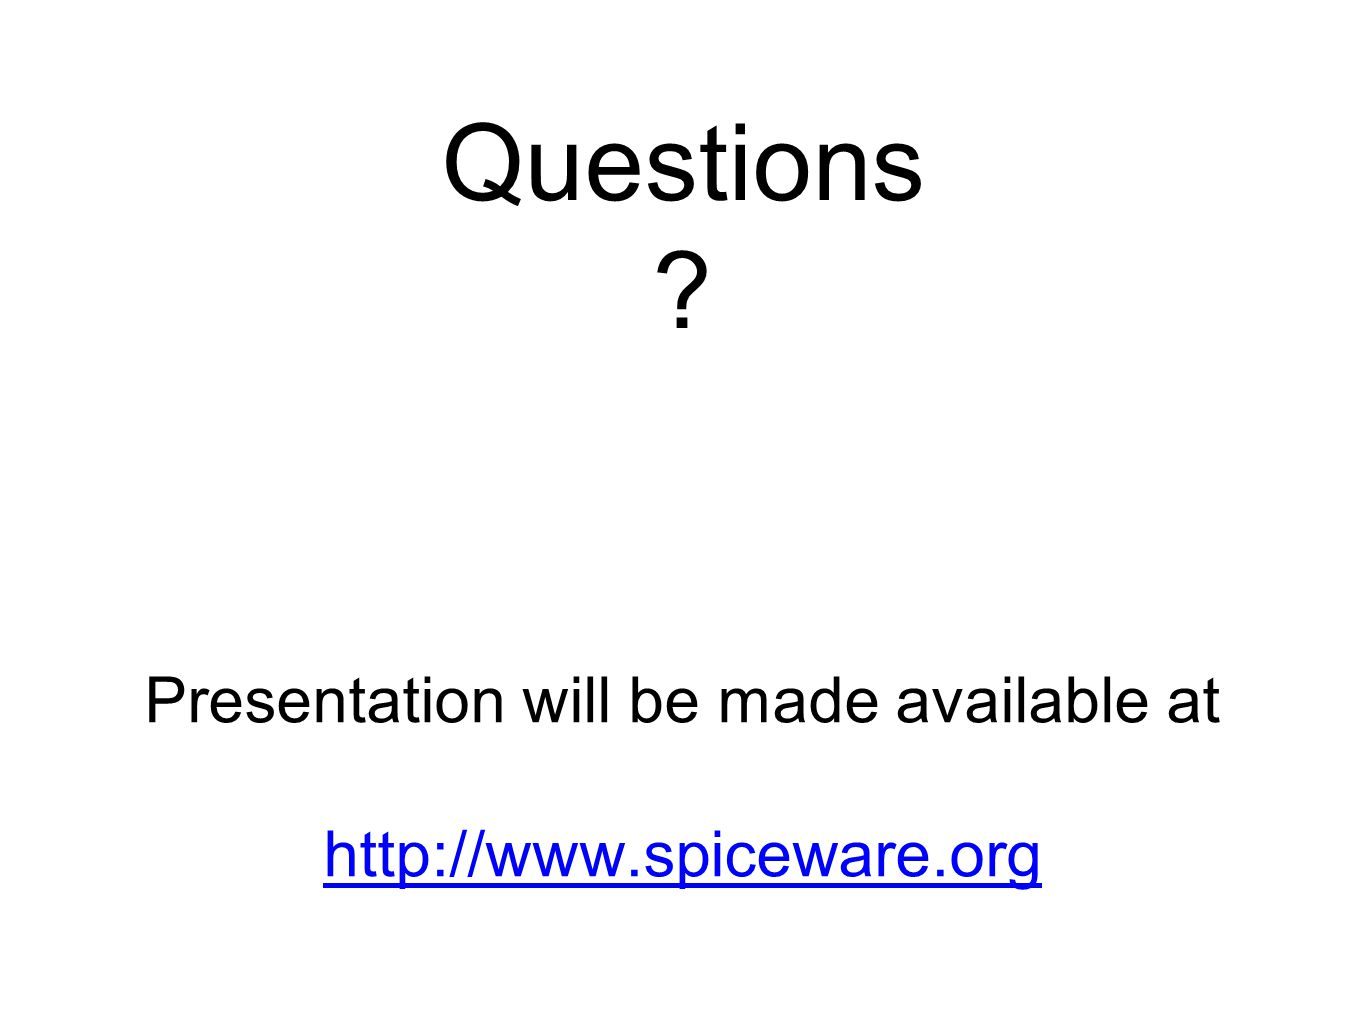 Presentation will be made available at http://www.spiceware.org http://www.spiceware.org Questions ?